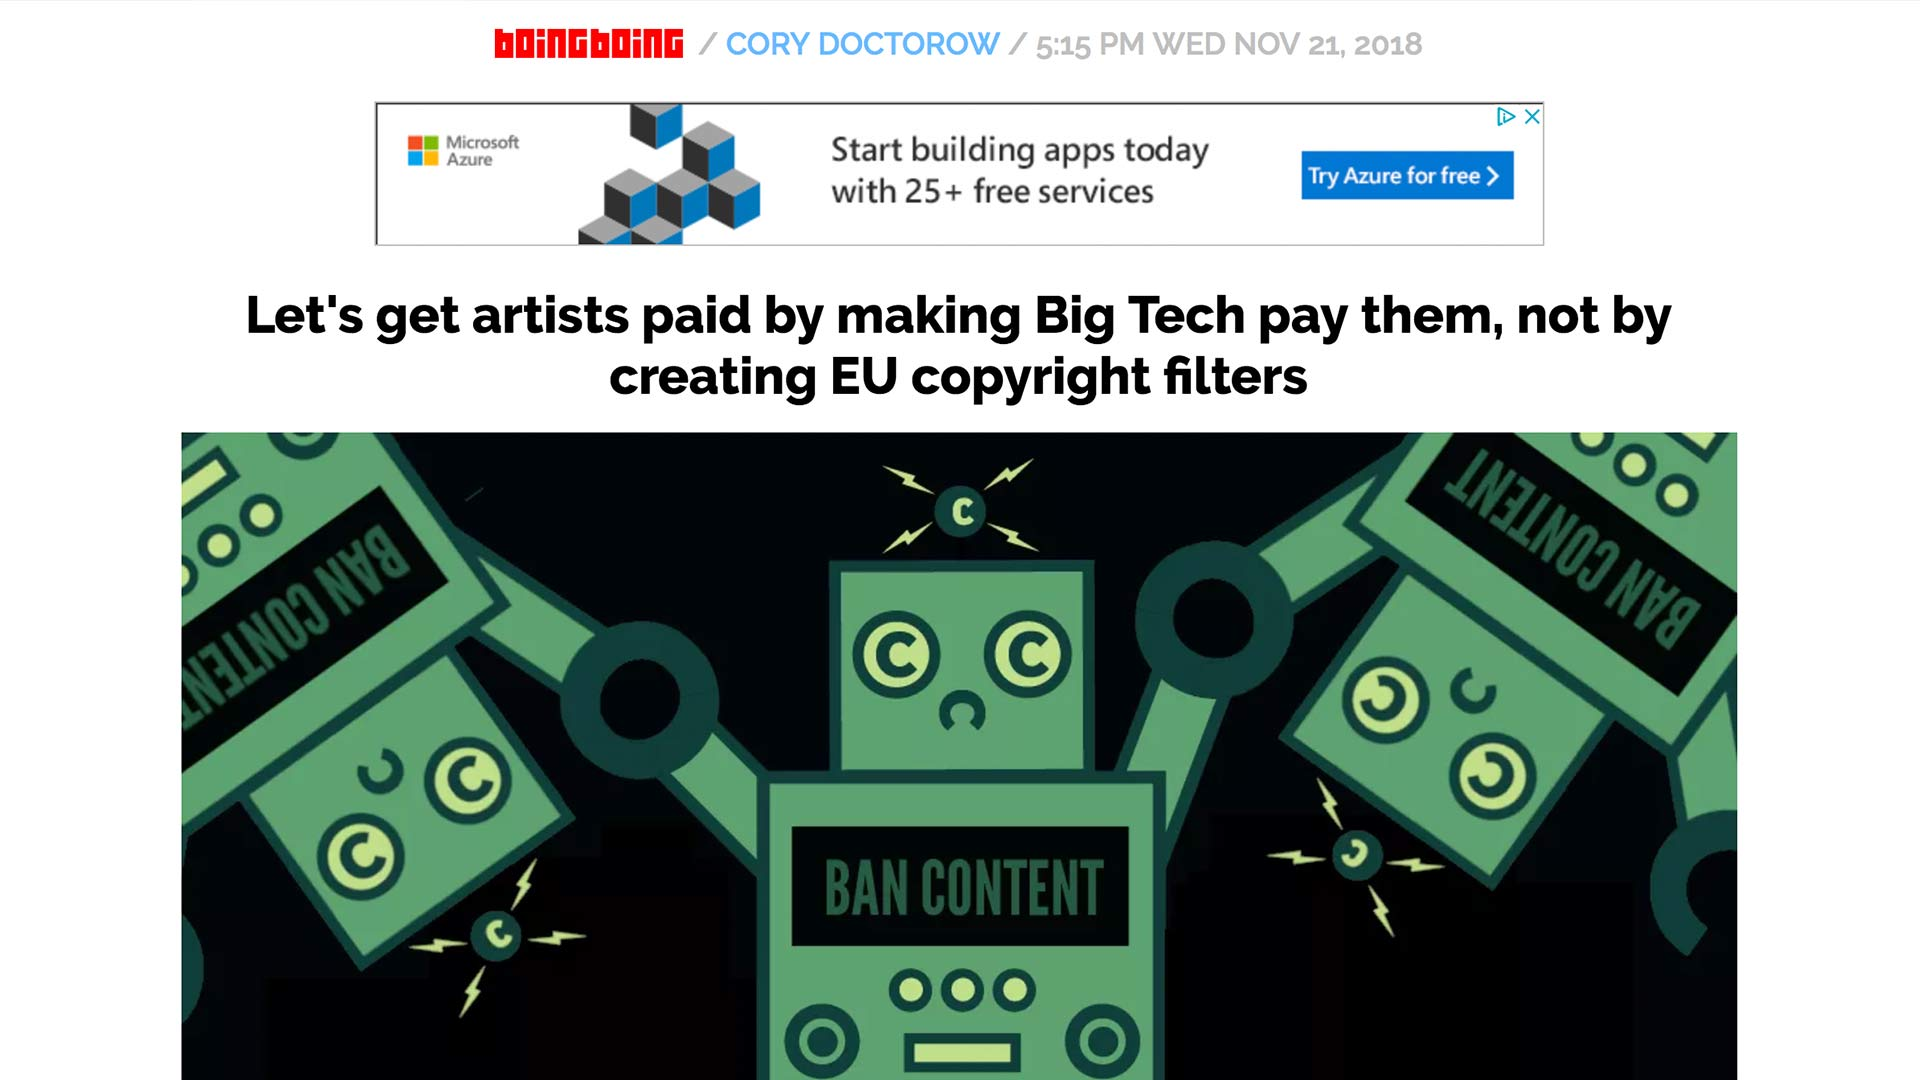 Fairness Rocks News Let's get artists paid by making Big Tech pay them, not by creating EU copyright filters